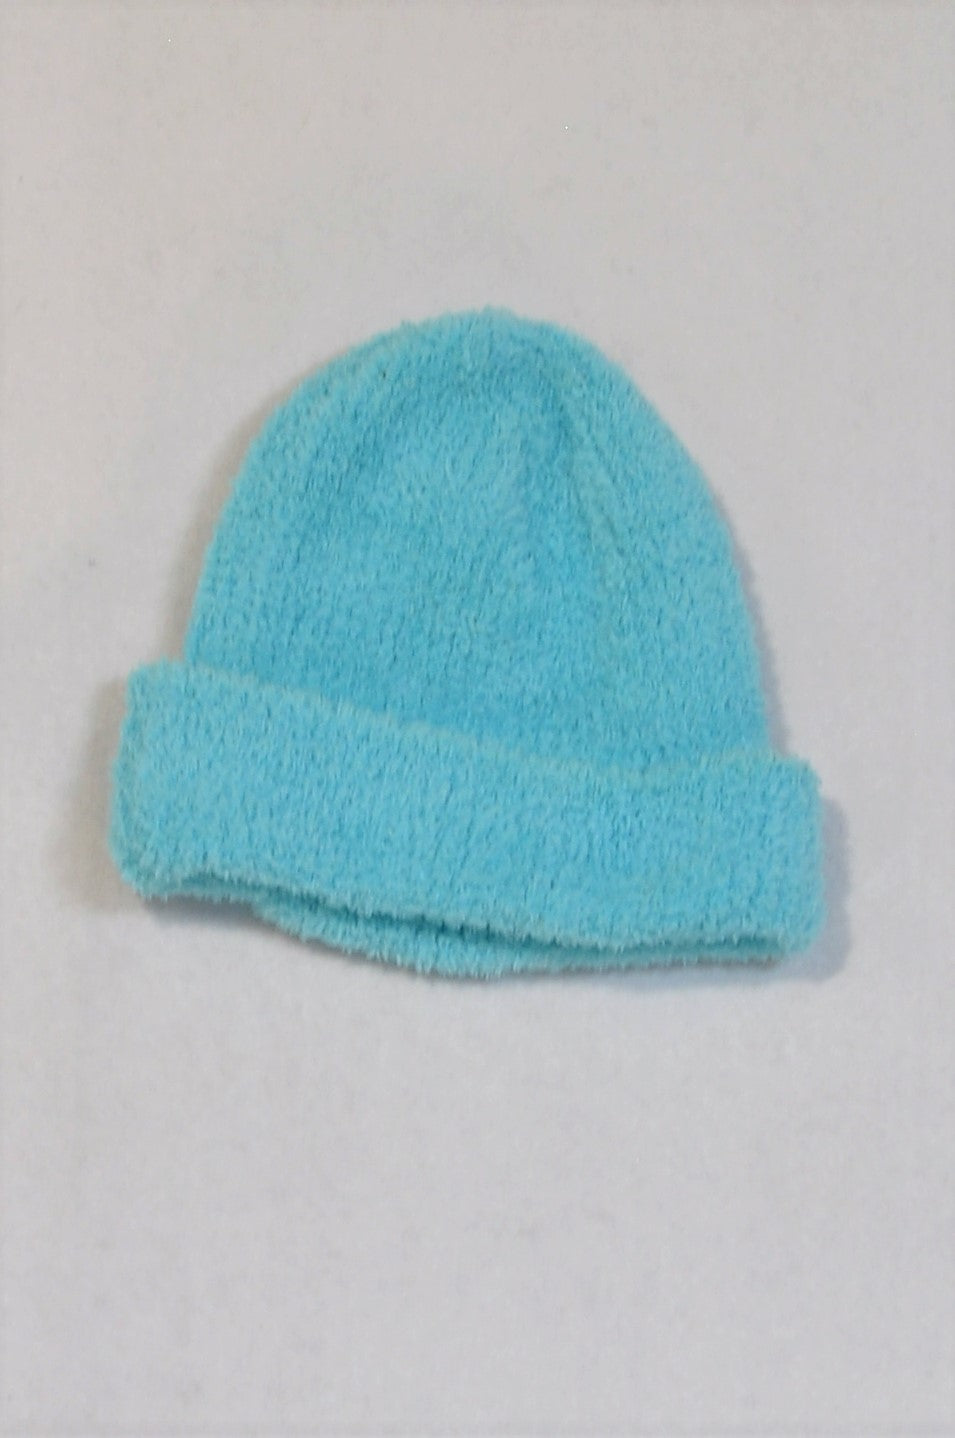 Unbranded Soft Blue Fuzzy Fleece Beanie Unisex 1-2 years